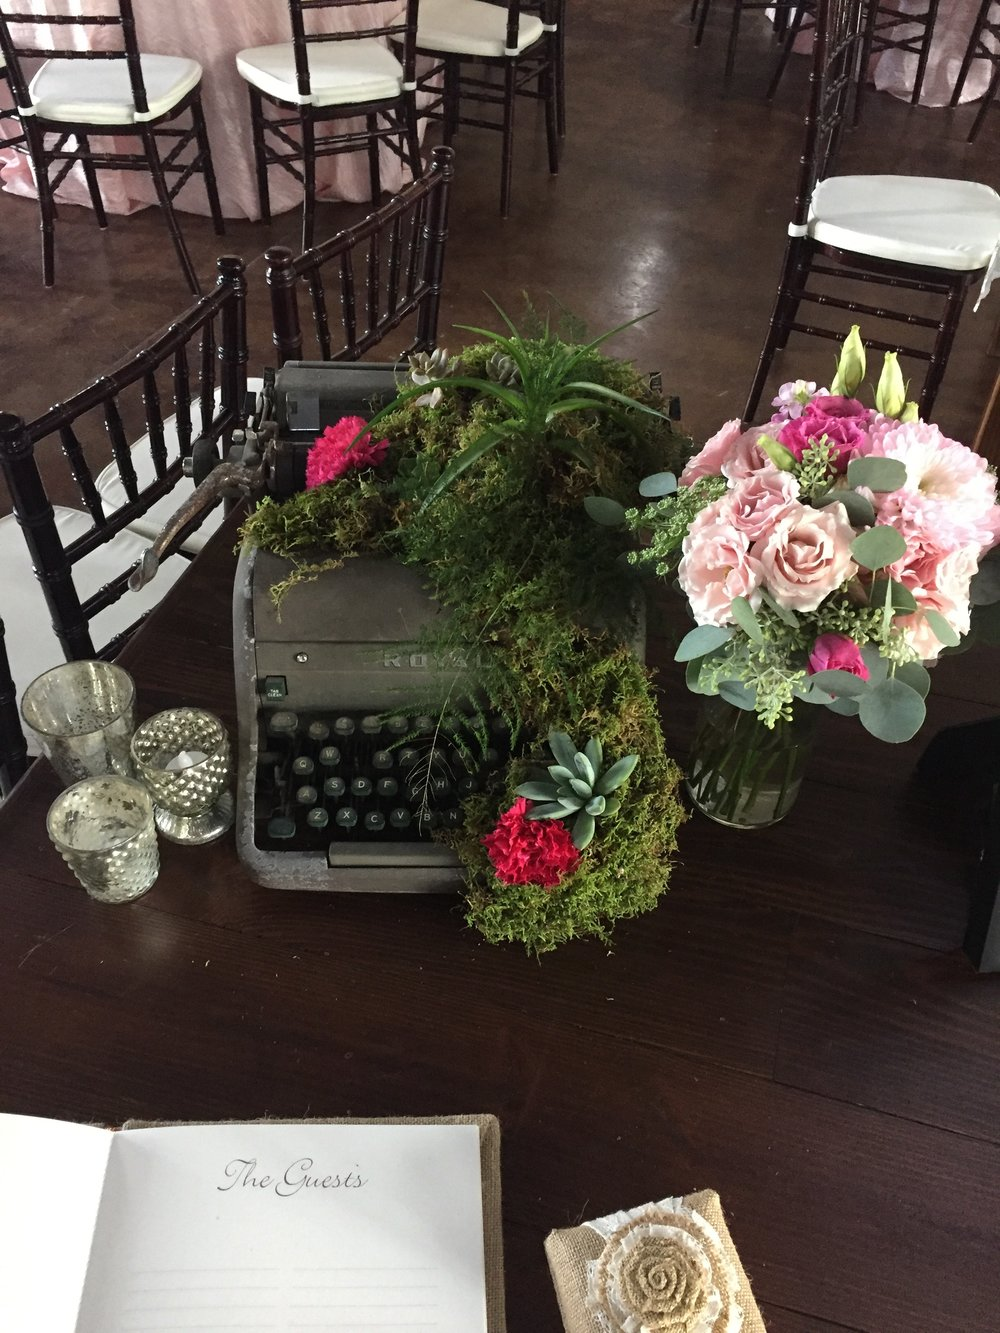 I am so in love with this typewriter and flowers! This just stole my heart as soon I saw the finished product!!